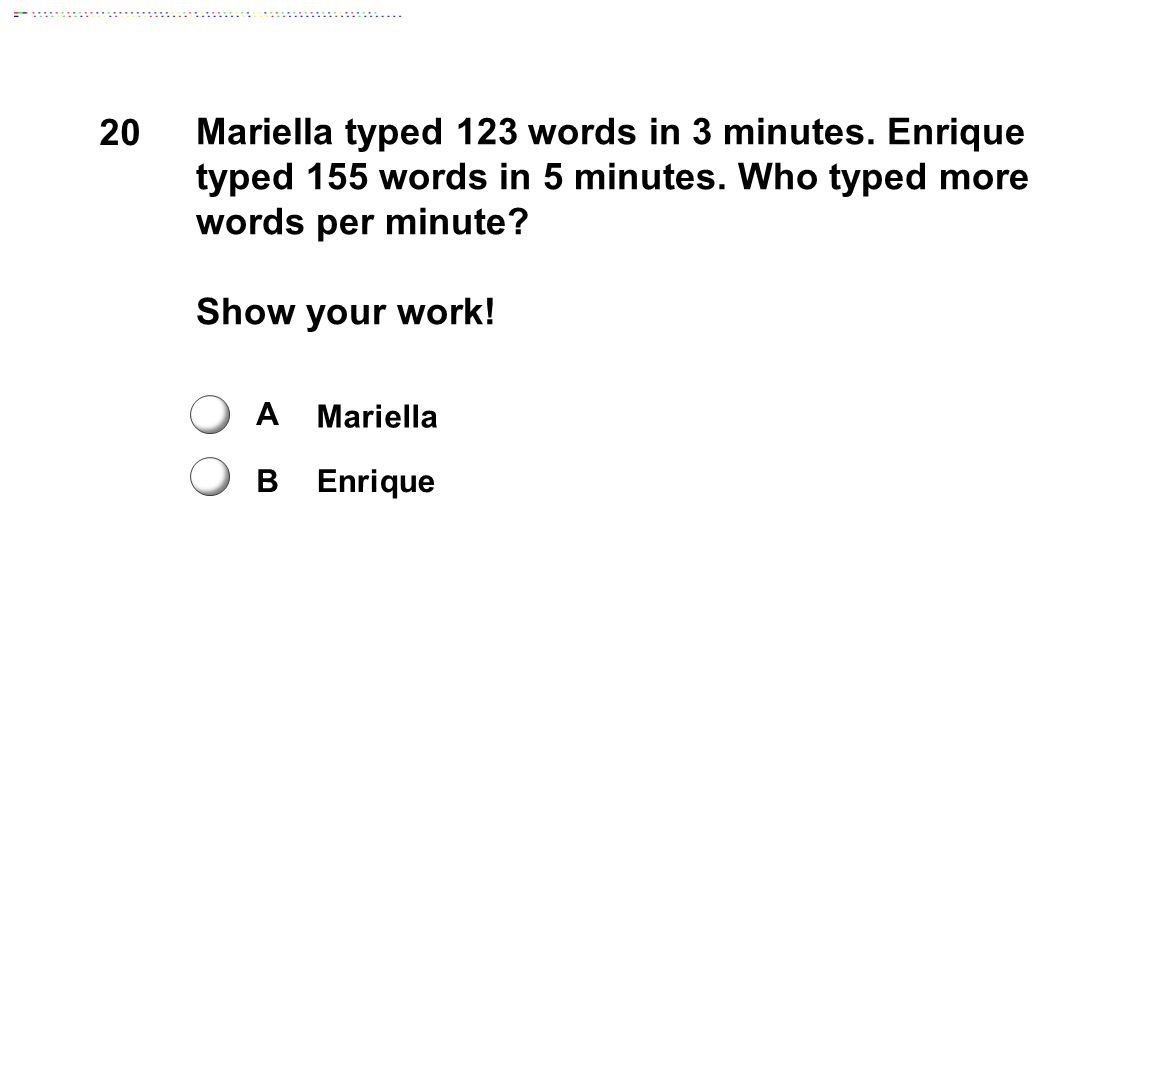 20 Mariella typed 123 words in 3 minutes. Enrique typed 155 words in 5 minutes. Who typed more words per minute